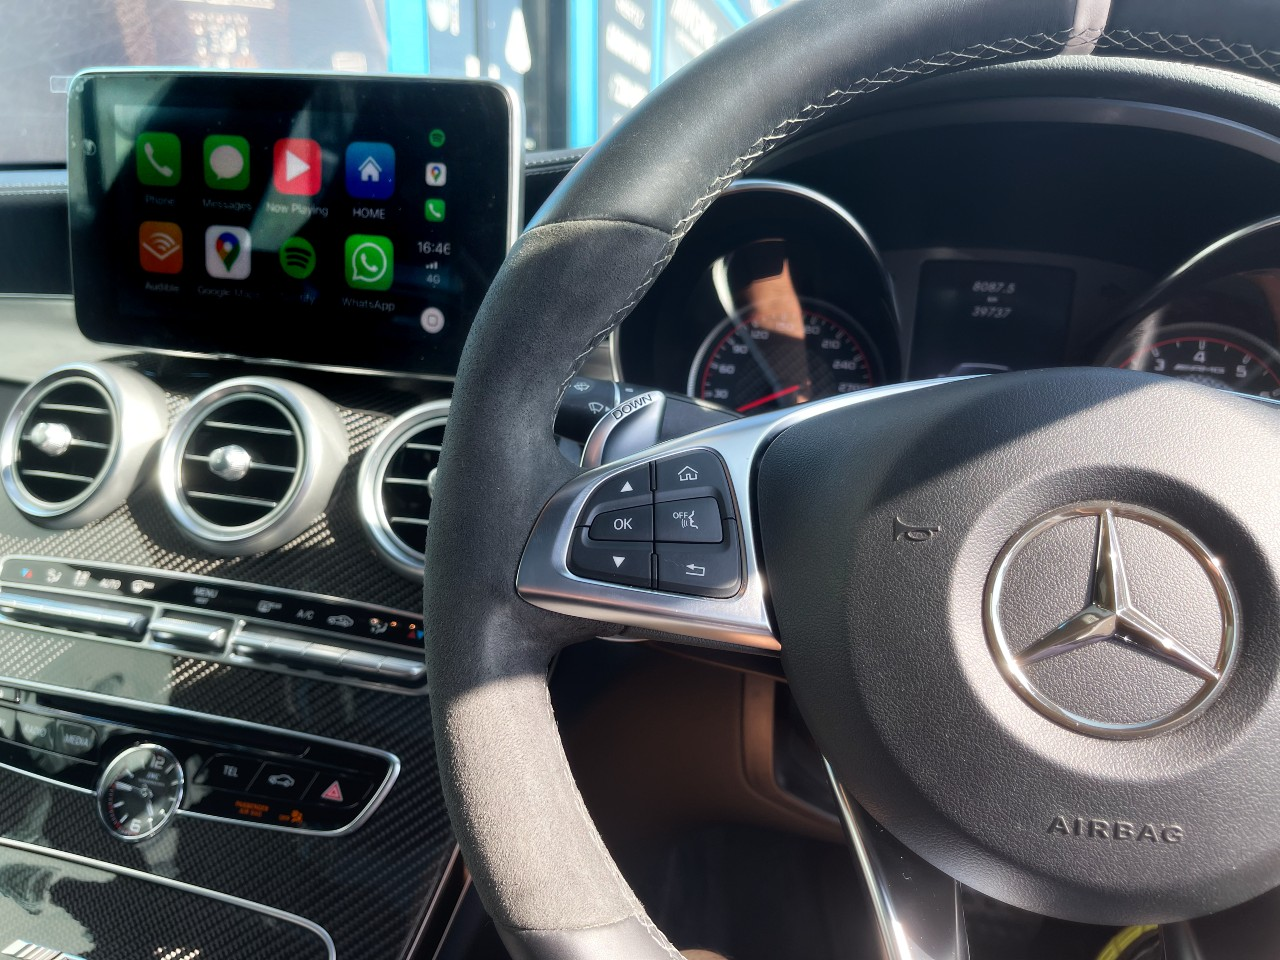 CarPlay and Android Auto Integration into Mercedes Benz - https://www.newcastleprosound.com.au/wp-content/uploads/2021/02/mercp.jpg